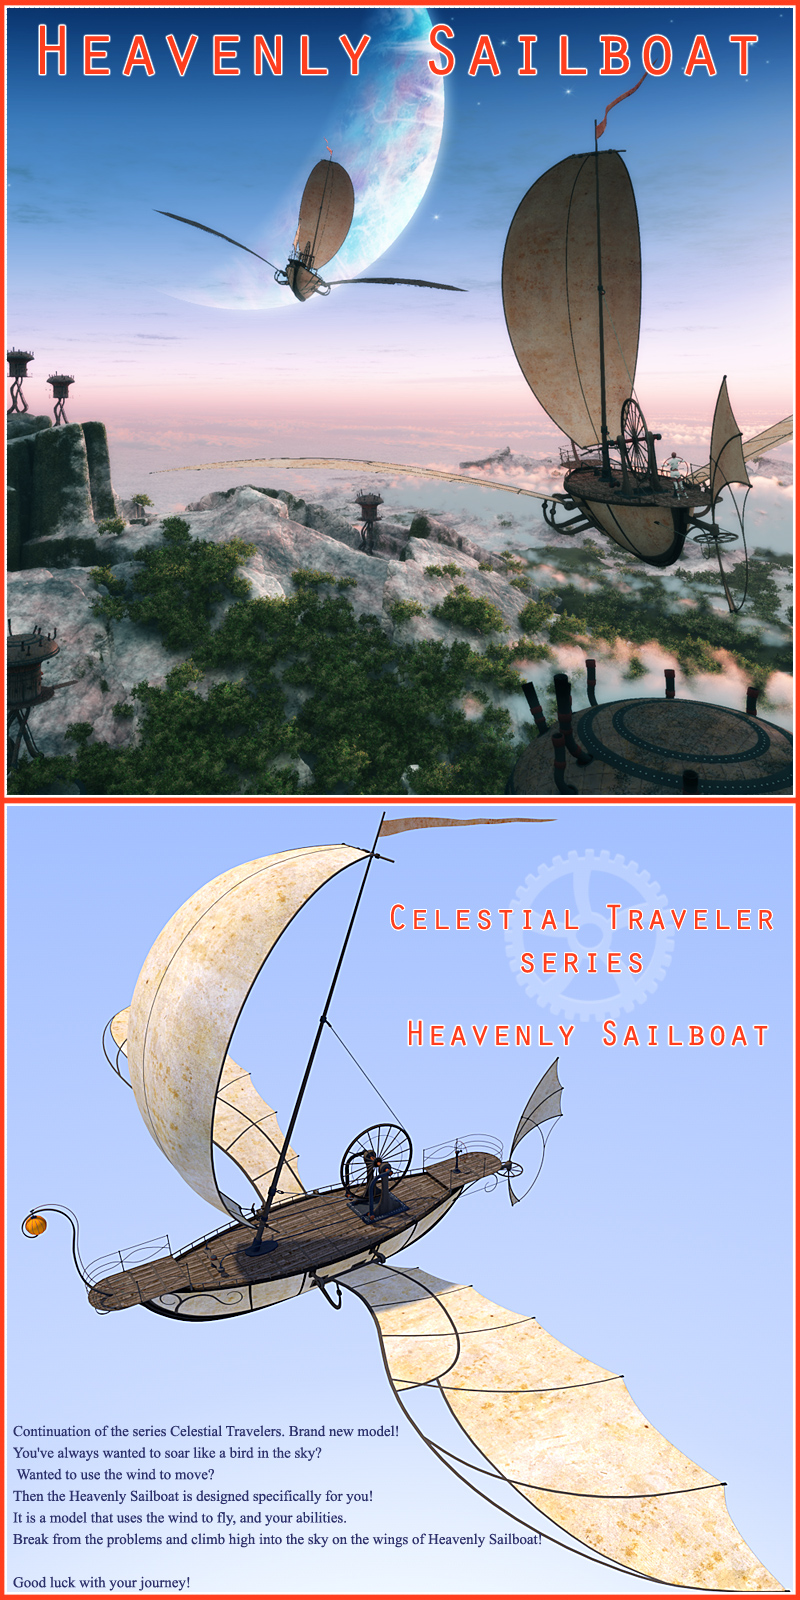 Heavenly Sailboat